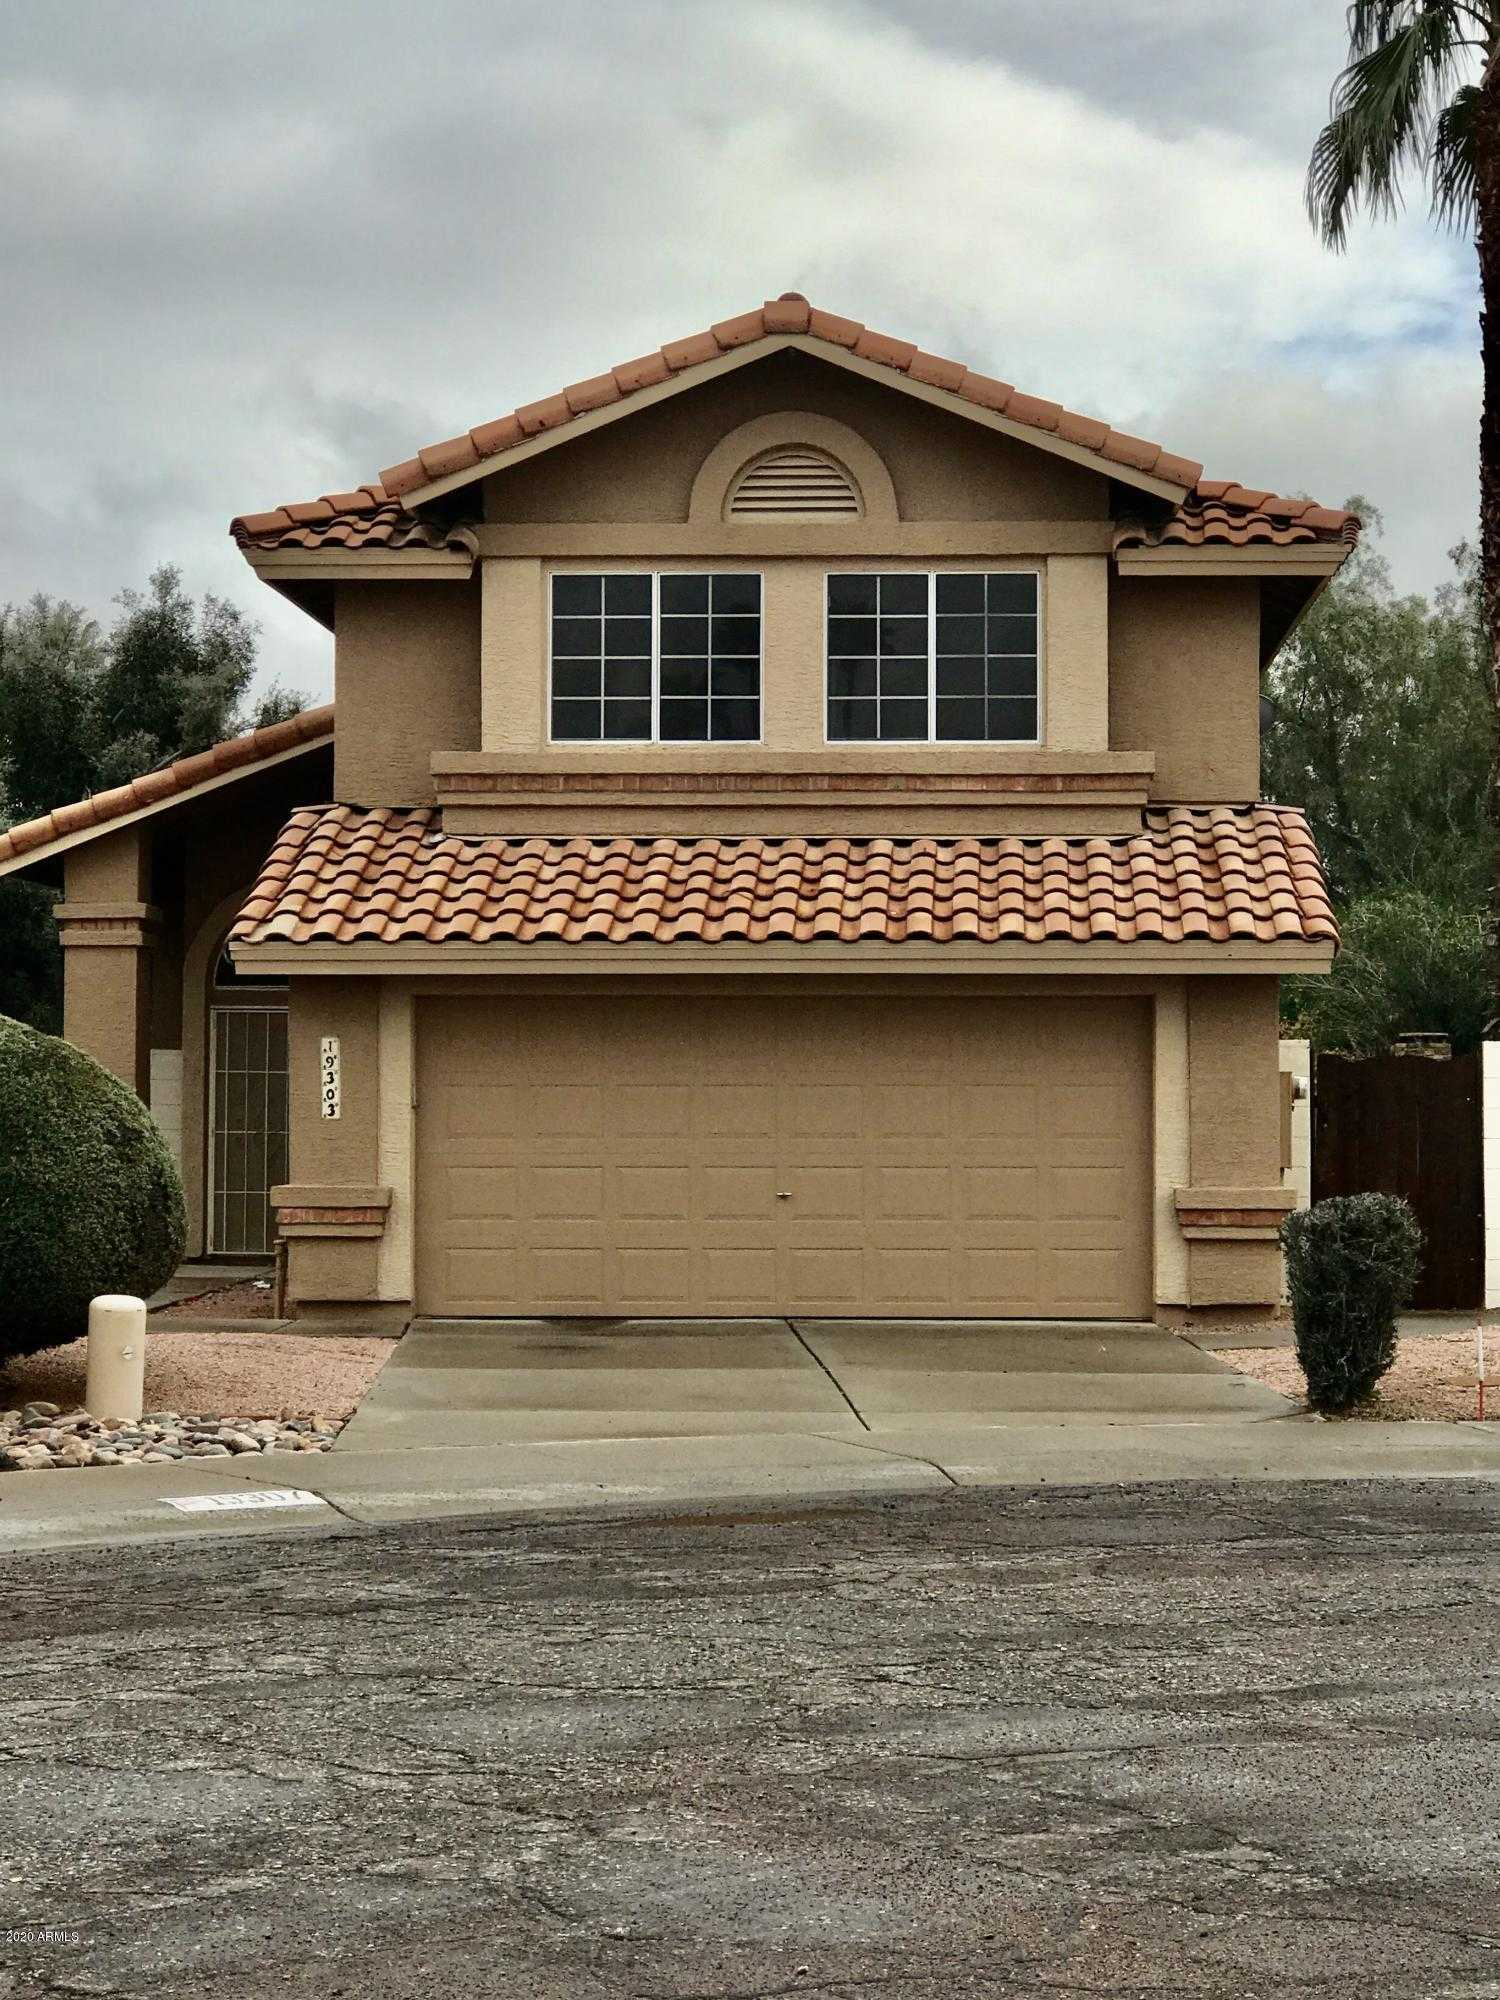 $312,000 - 3Br/3Ba - Home for Sale in Arrowhead On The Green, Glendale